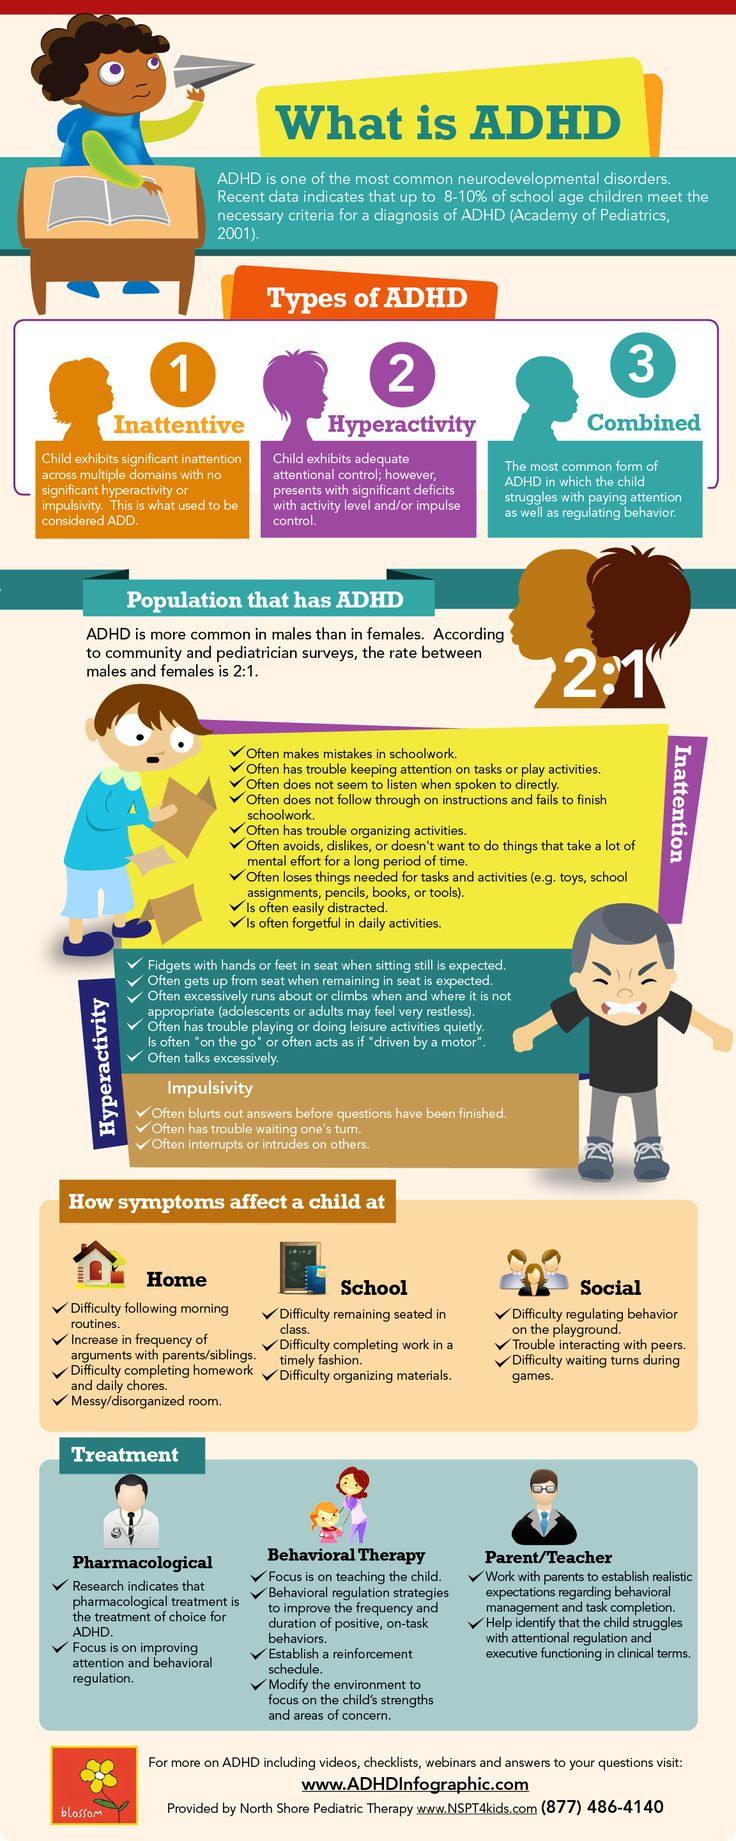 What is ADHD?  I think people just make a fuss out of it. Kids are active. They learn actively only~  Well~ for reference~